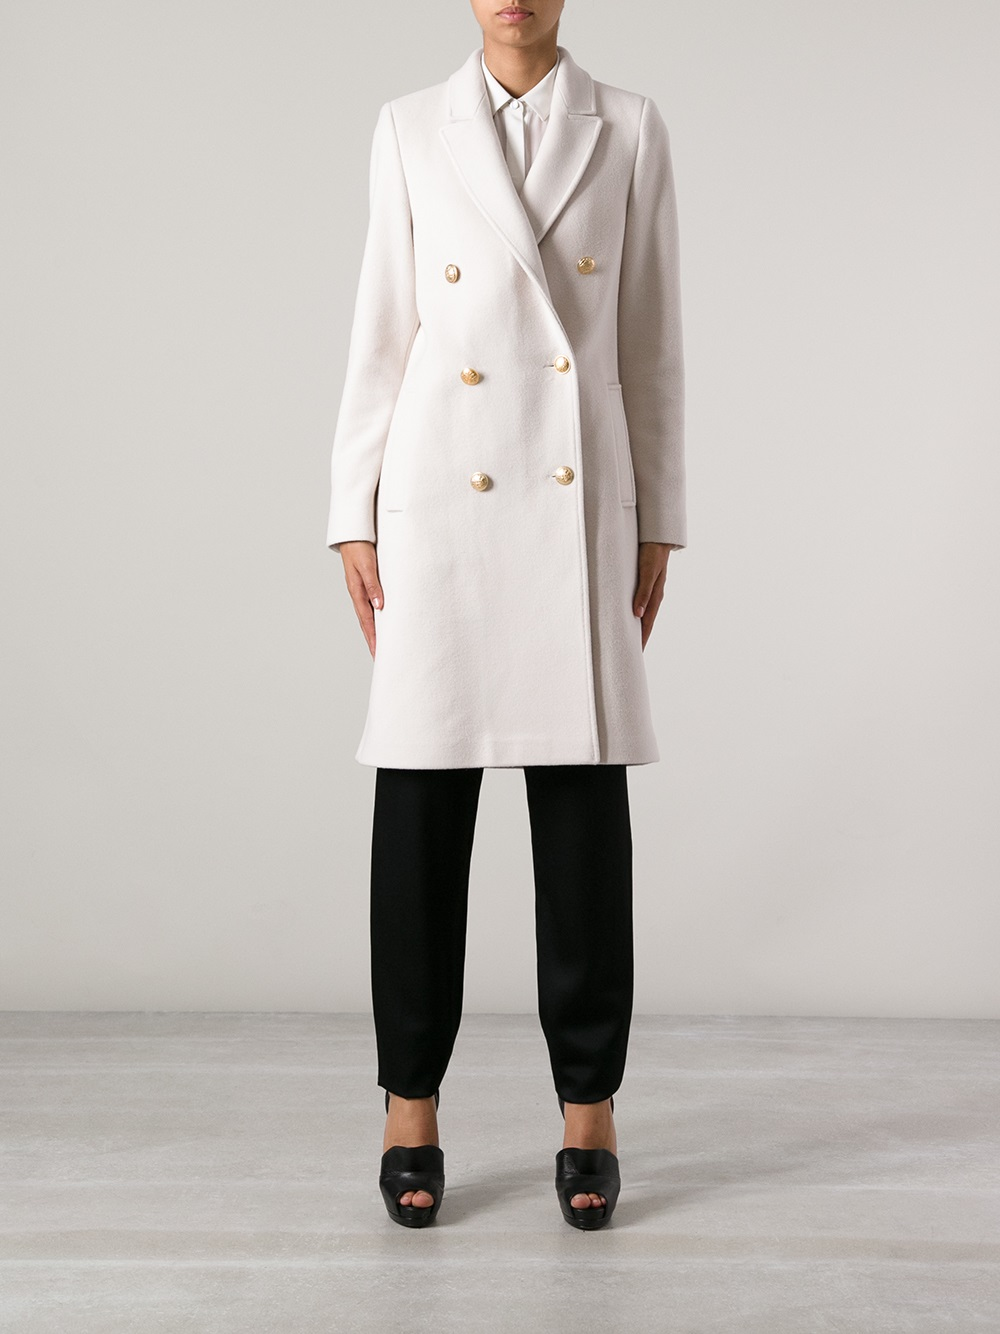 Long White Pea Coat - Tradingbasis